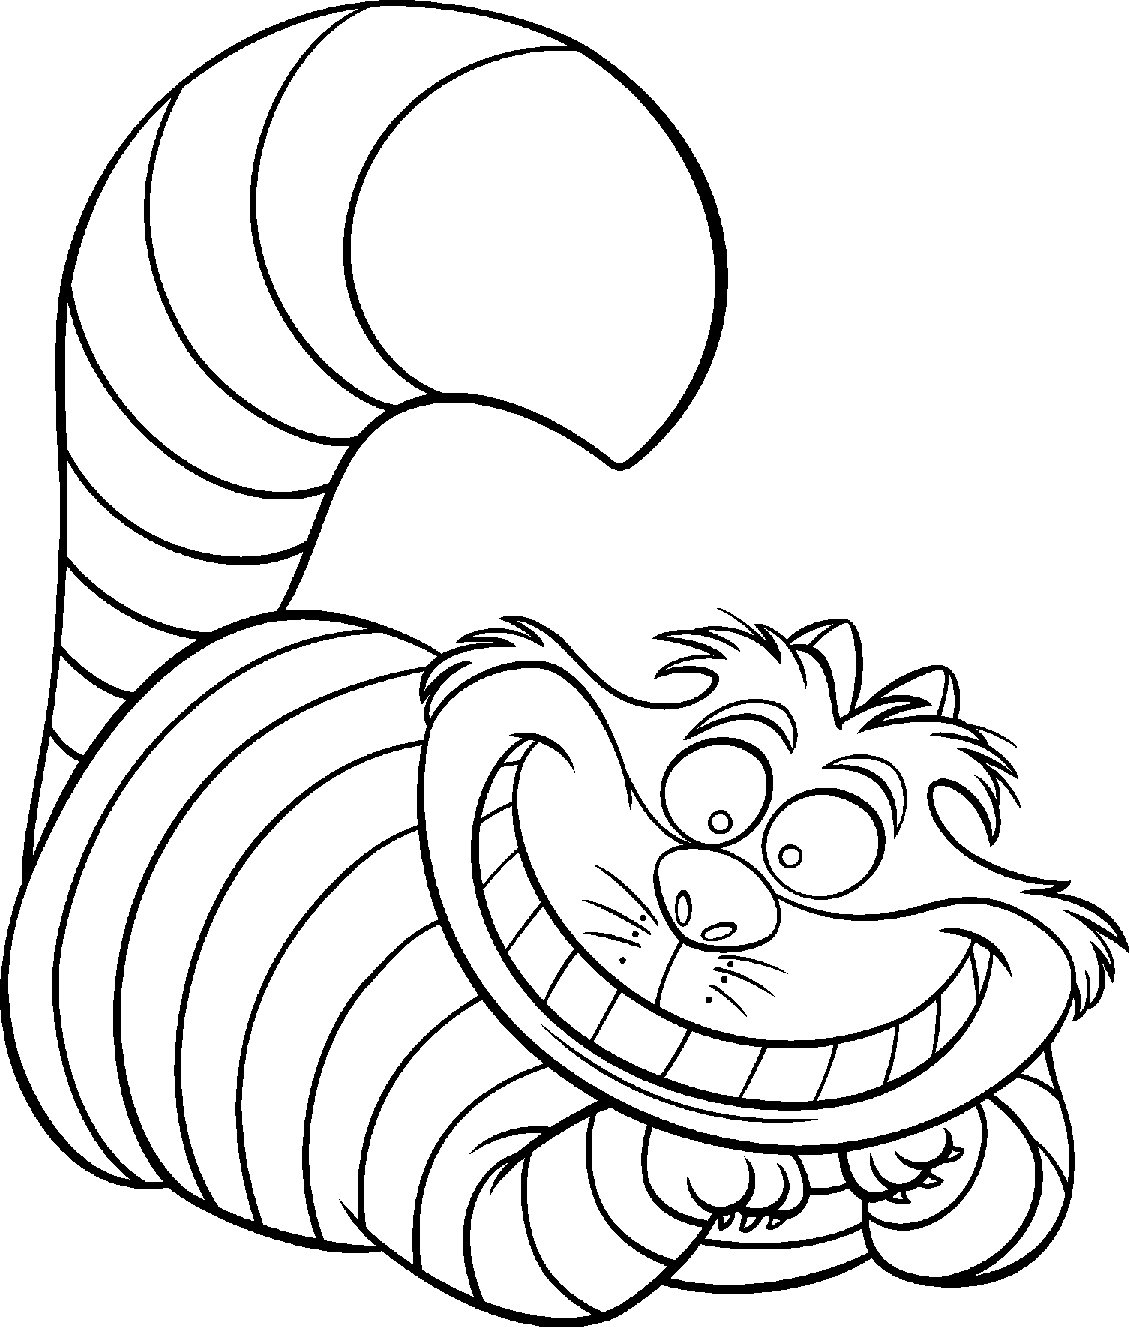 Coloring Book Pages Disney Archives And Disney Coloring Book Pages